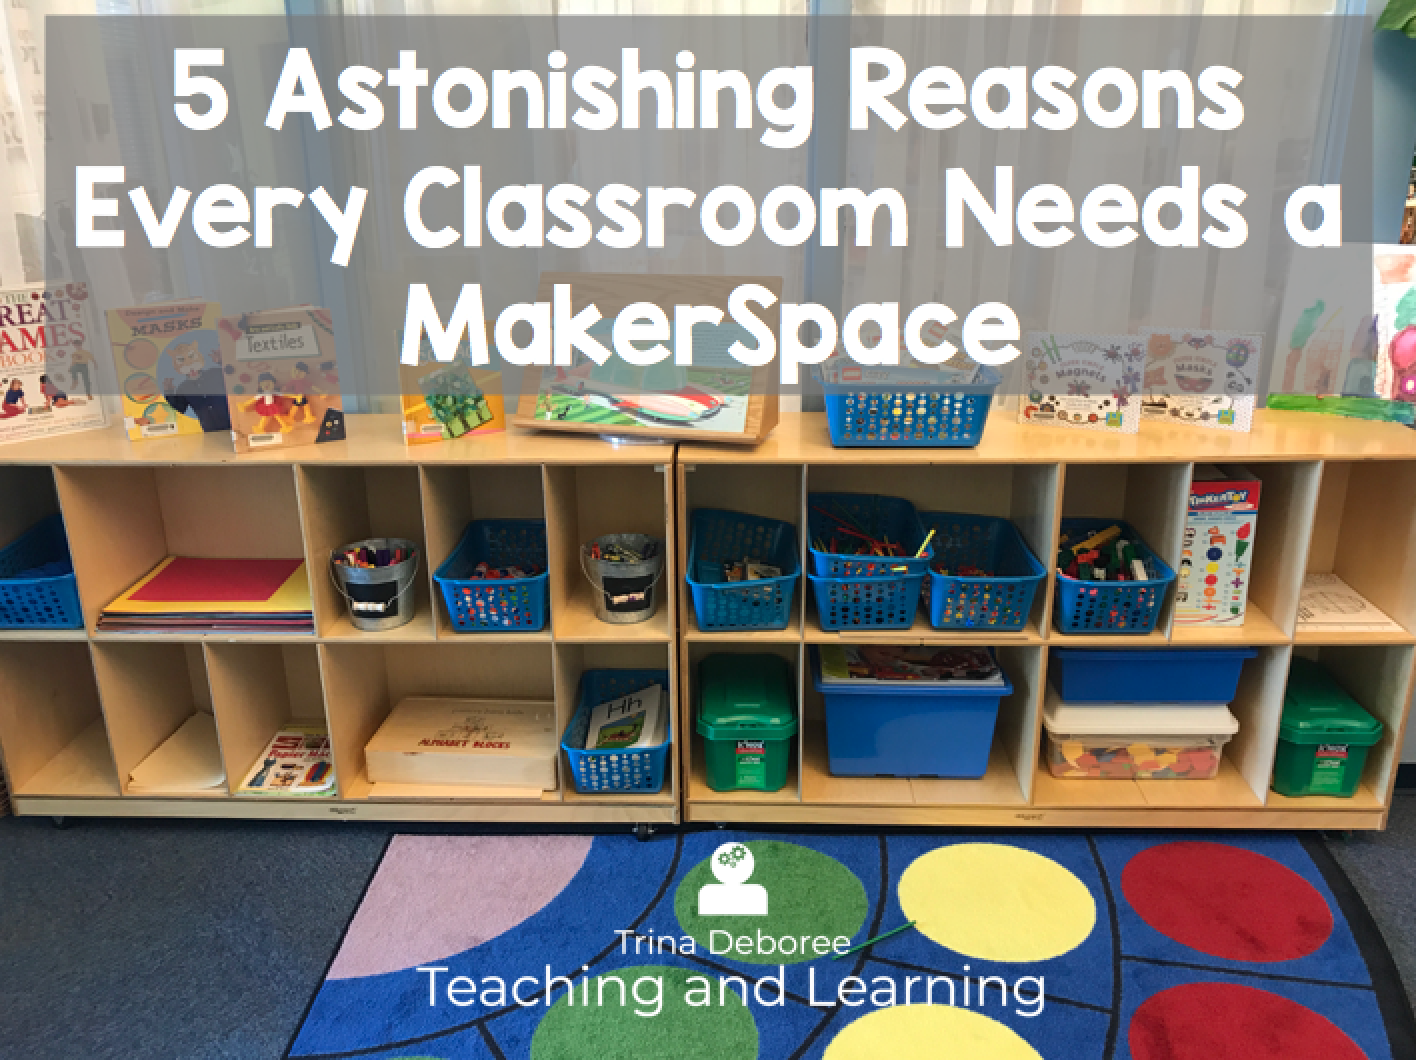 5 Astonishing Reasons Every Classroom Needs a MakerSpace.png